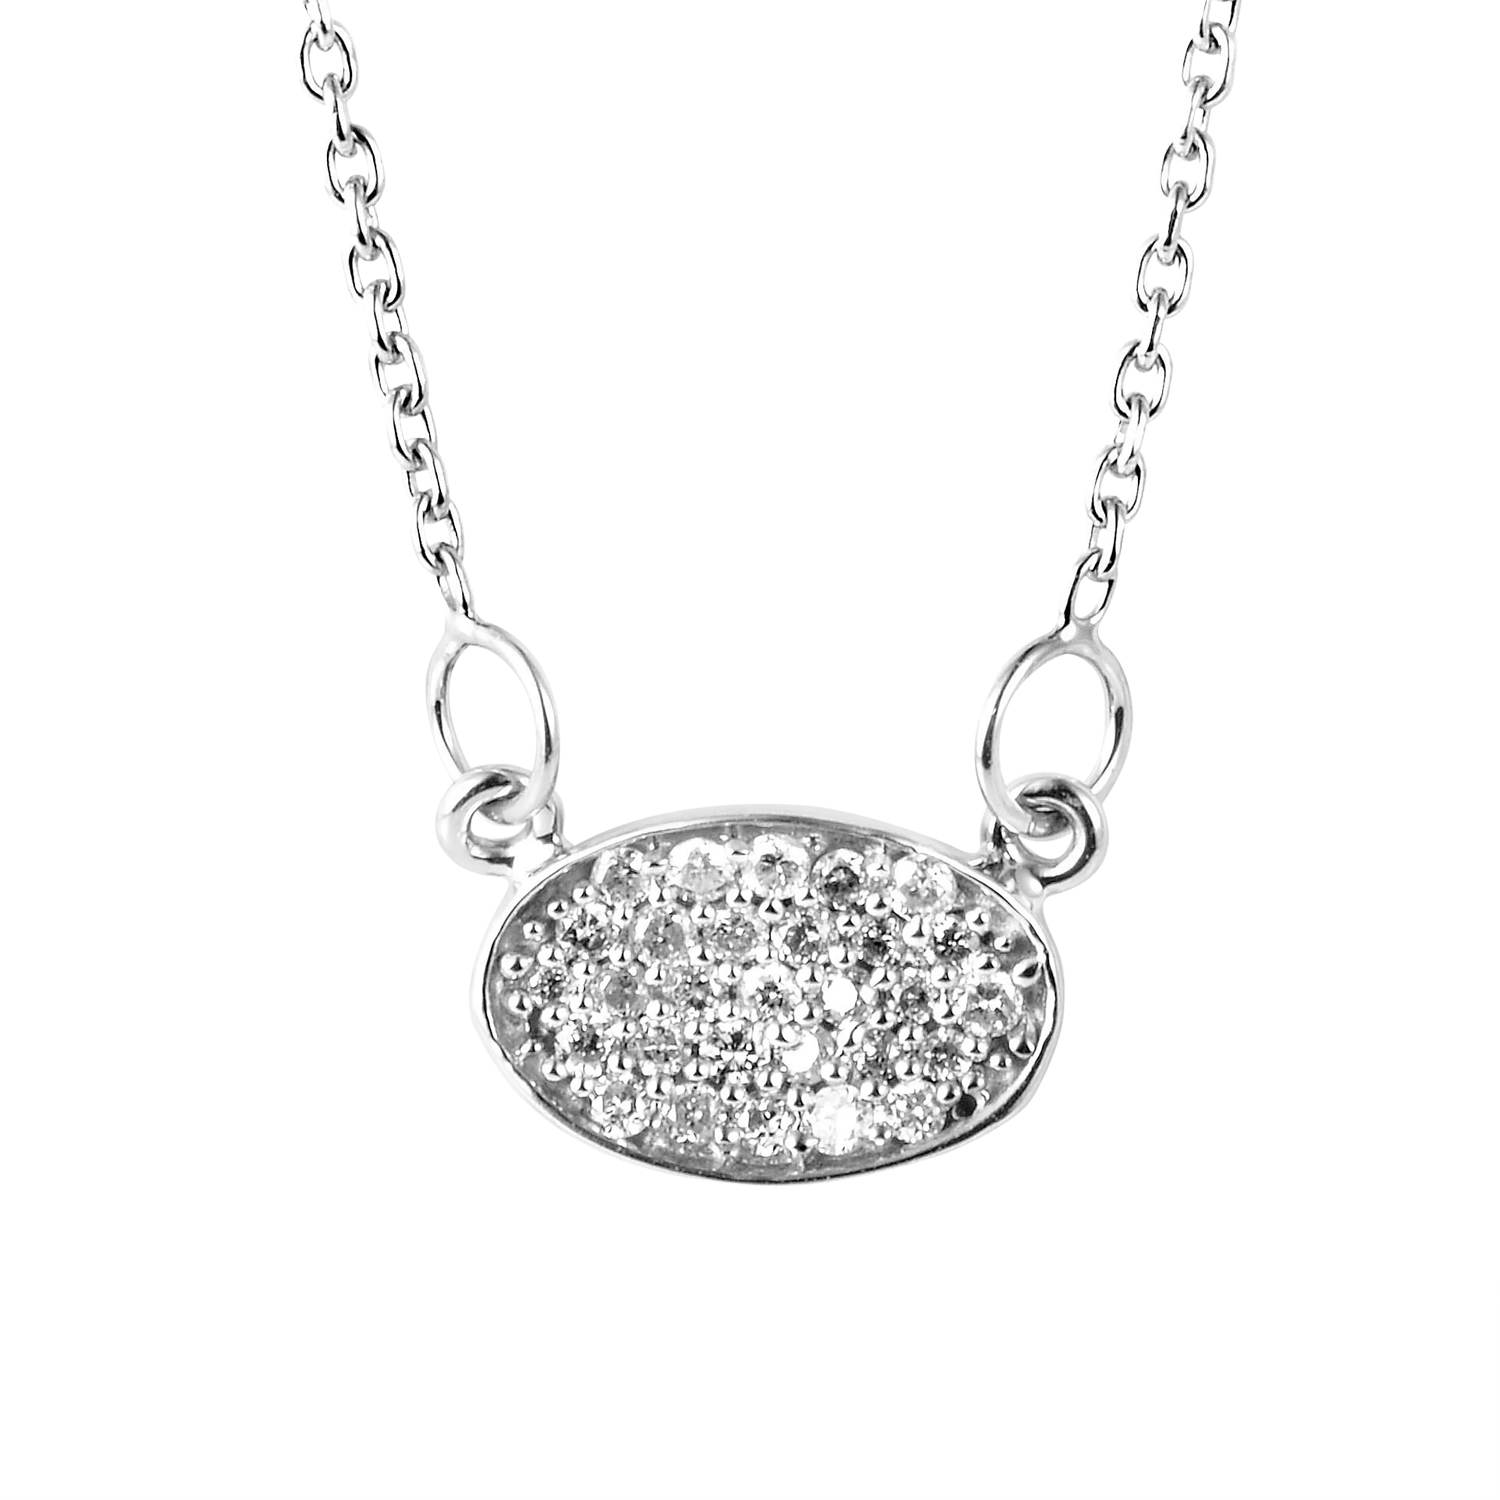 14K White Gold Diamond Pave Pendant Necklace PD4-151070W